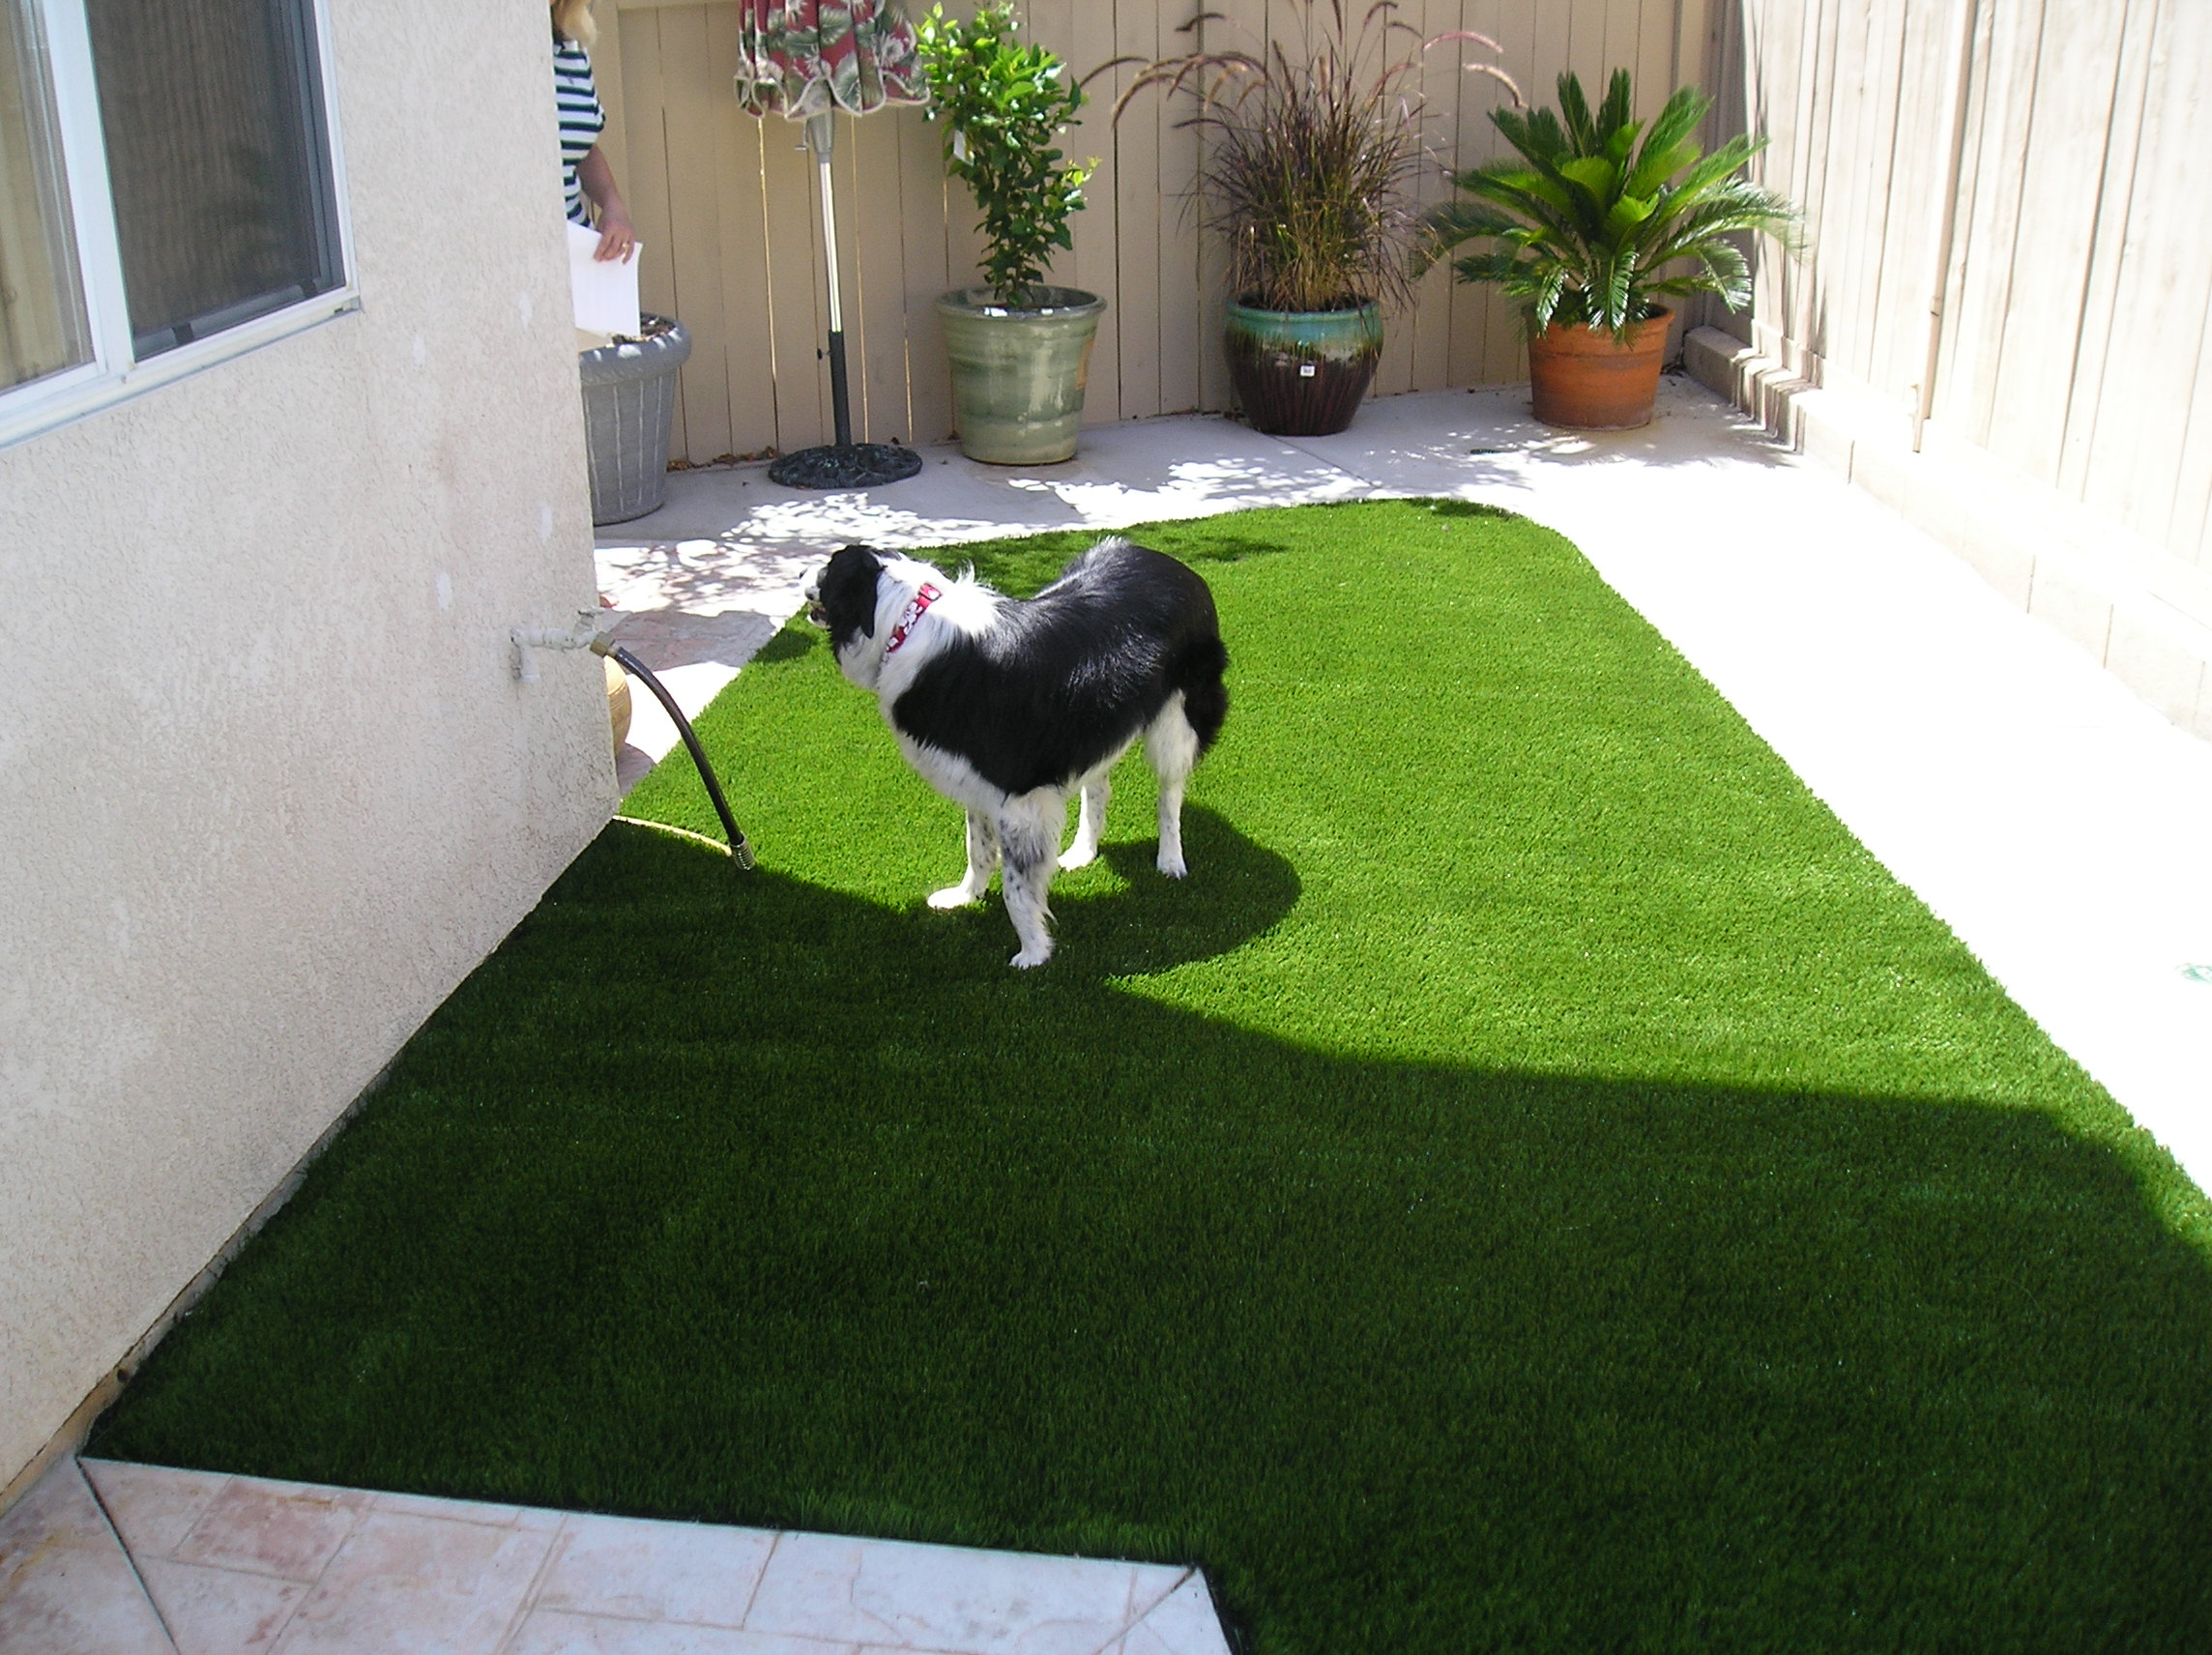 S Blade-90 landscaping with artificial grass,grass looking rug,real looking fake grass,real looking artificial grass,artificial grasses,fake grasses,grass looking rug,real looking fake grass,real looking artificial grass